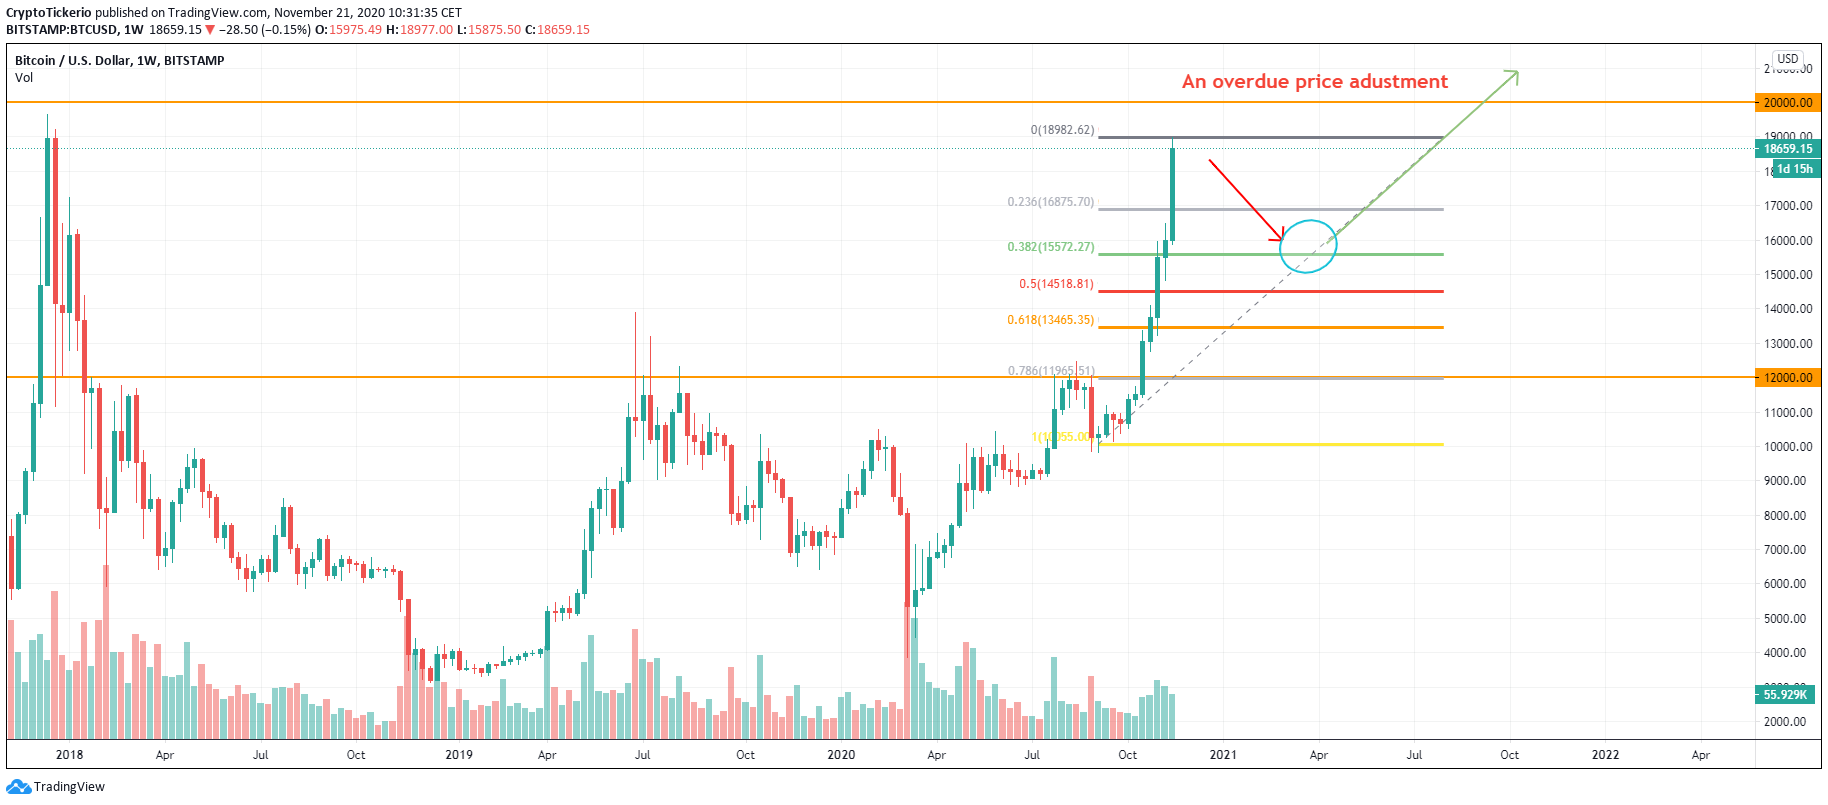 BTC/USD 1-week chart, plotting important areas of adjustments